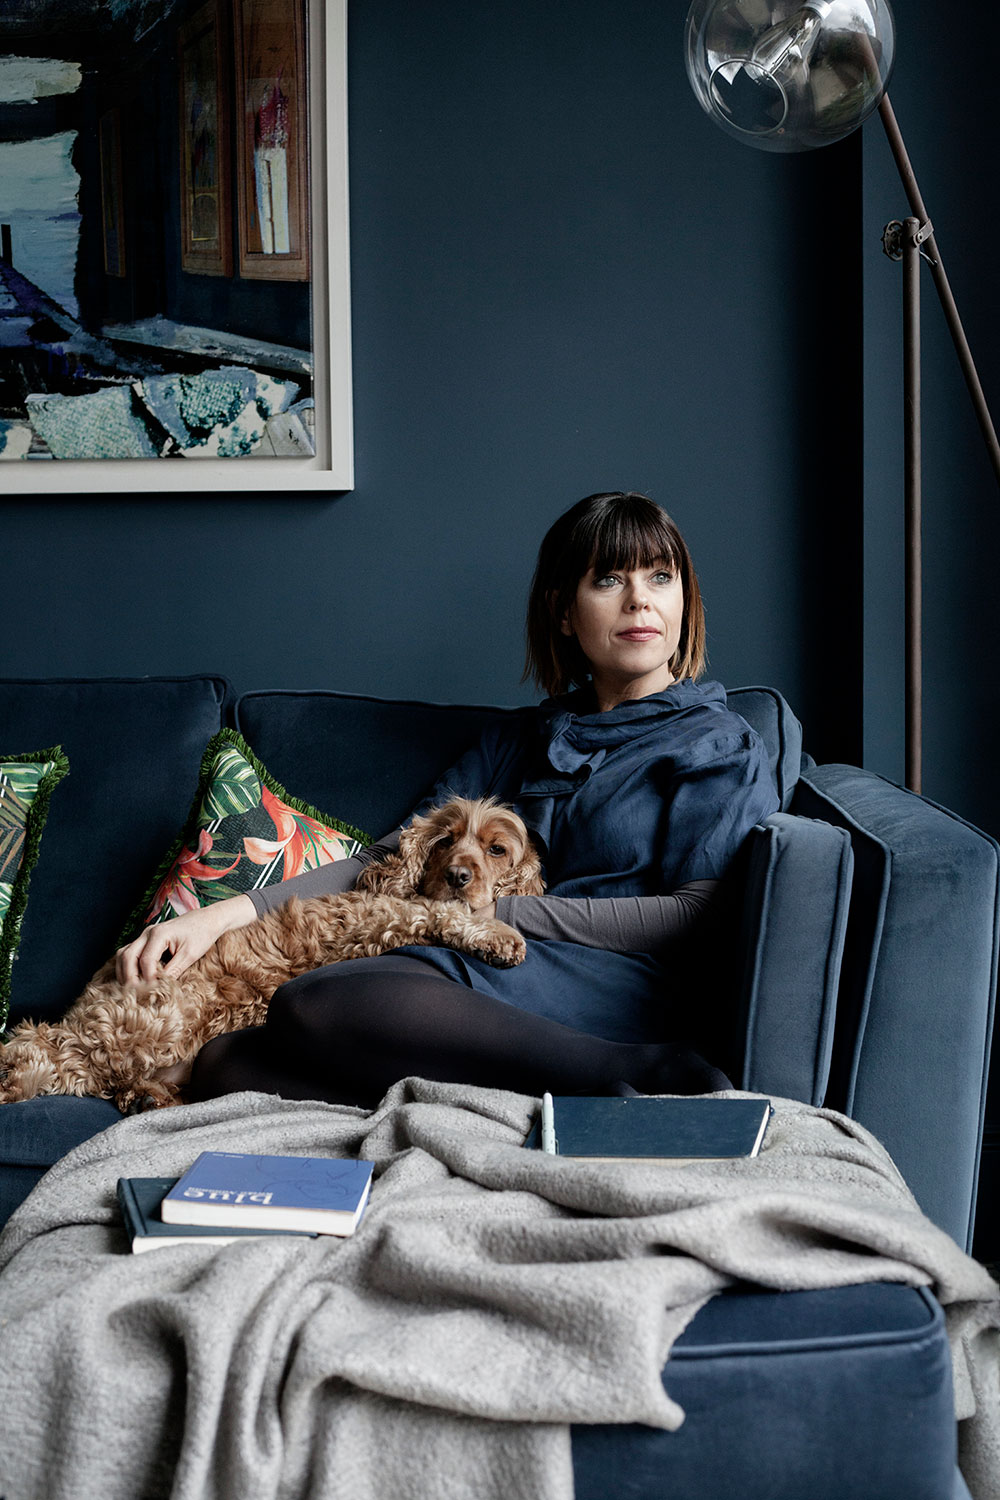 Interior designer Caroline Flannery of Interiors by Caroline at home in Clontarf Dublin with her dog on custom made sofa